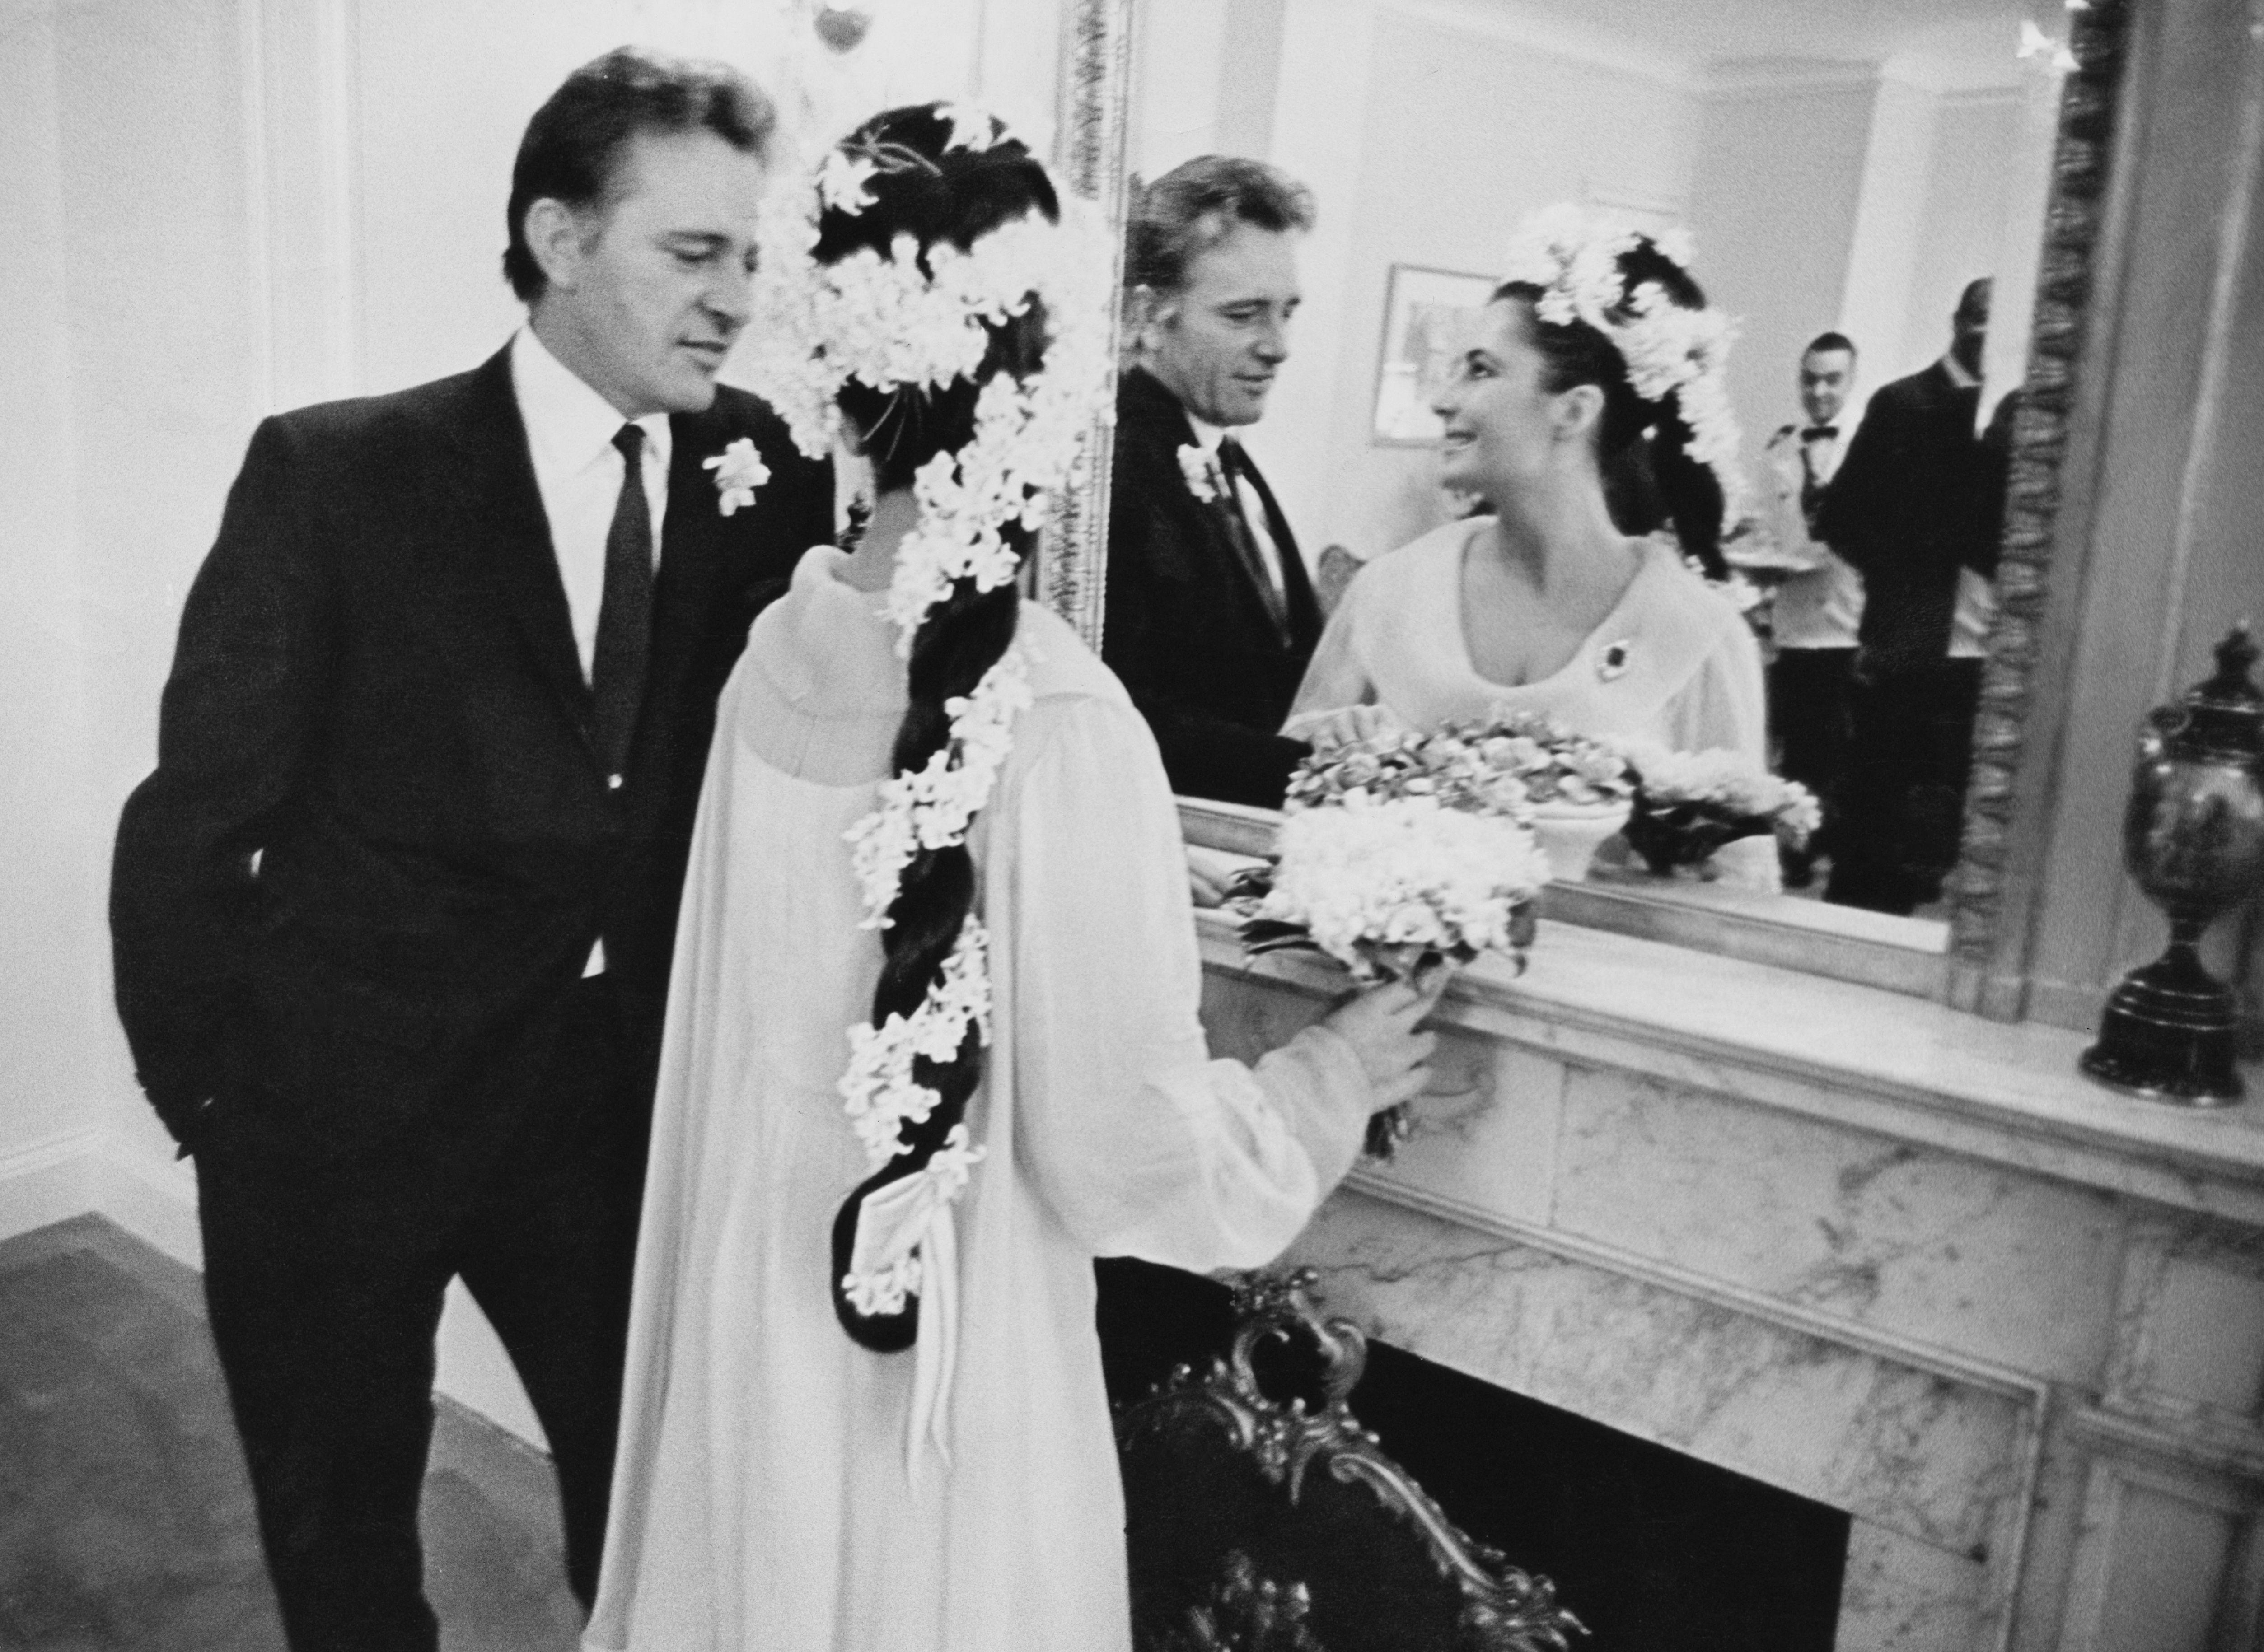 Revealed In All Its Glittering Glory Elizabeth Taylor S 100m Collection Of Gems Gowns And Art Goes On Display At Christie S Elizabeth Taylor Jewelry Celebrity Bride Untraditional Wedding Dress